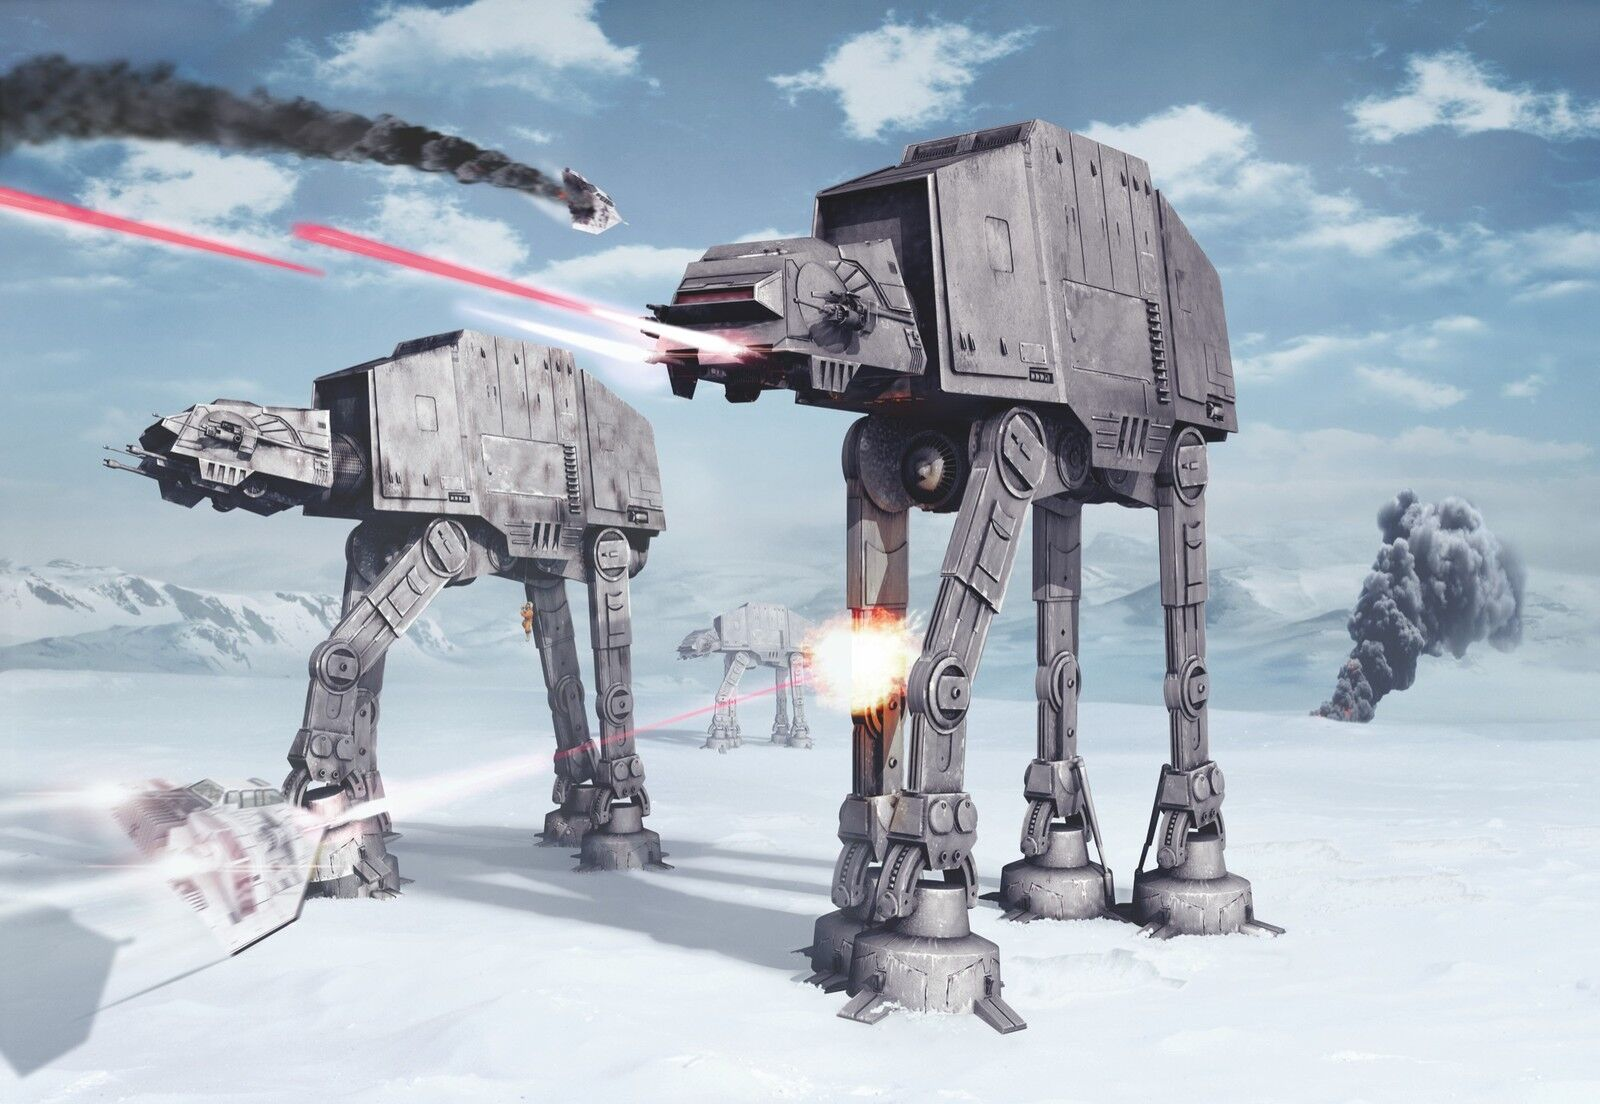 Riesiges Fototapete Wandtapete Star Wars Battle Of Hoth Kinderzimmer Papier